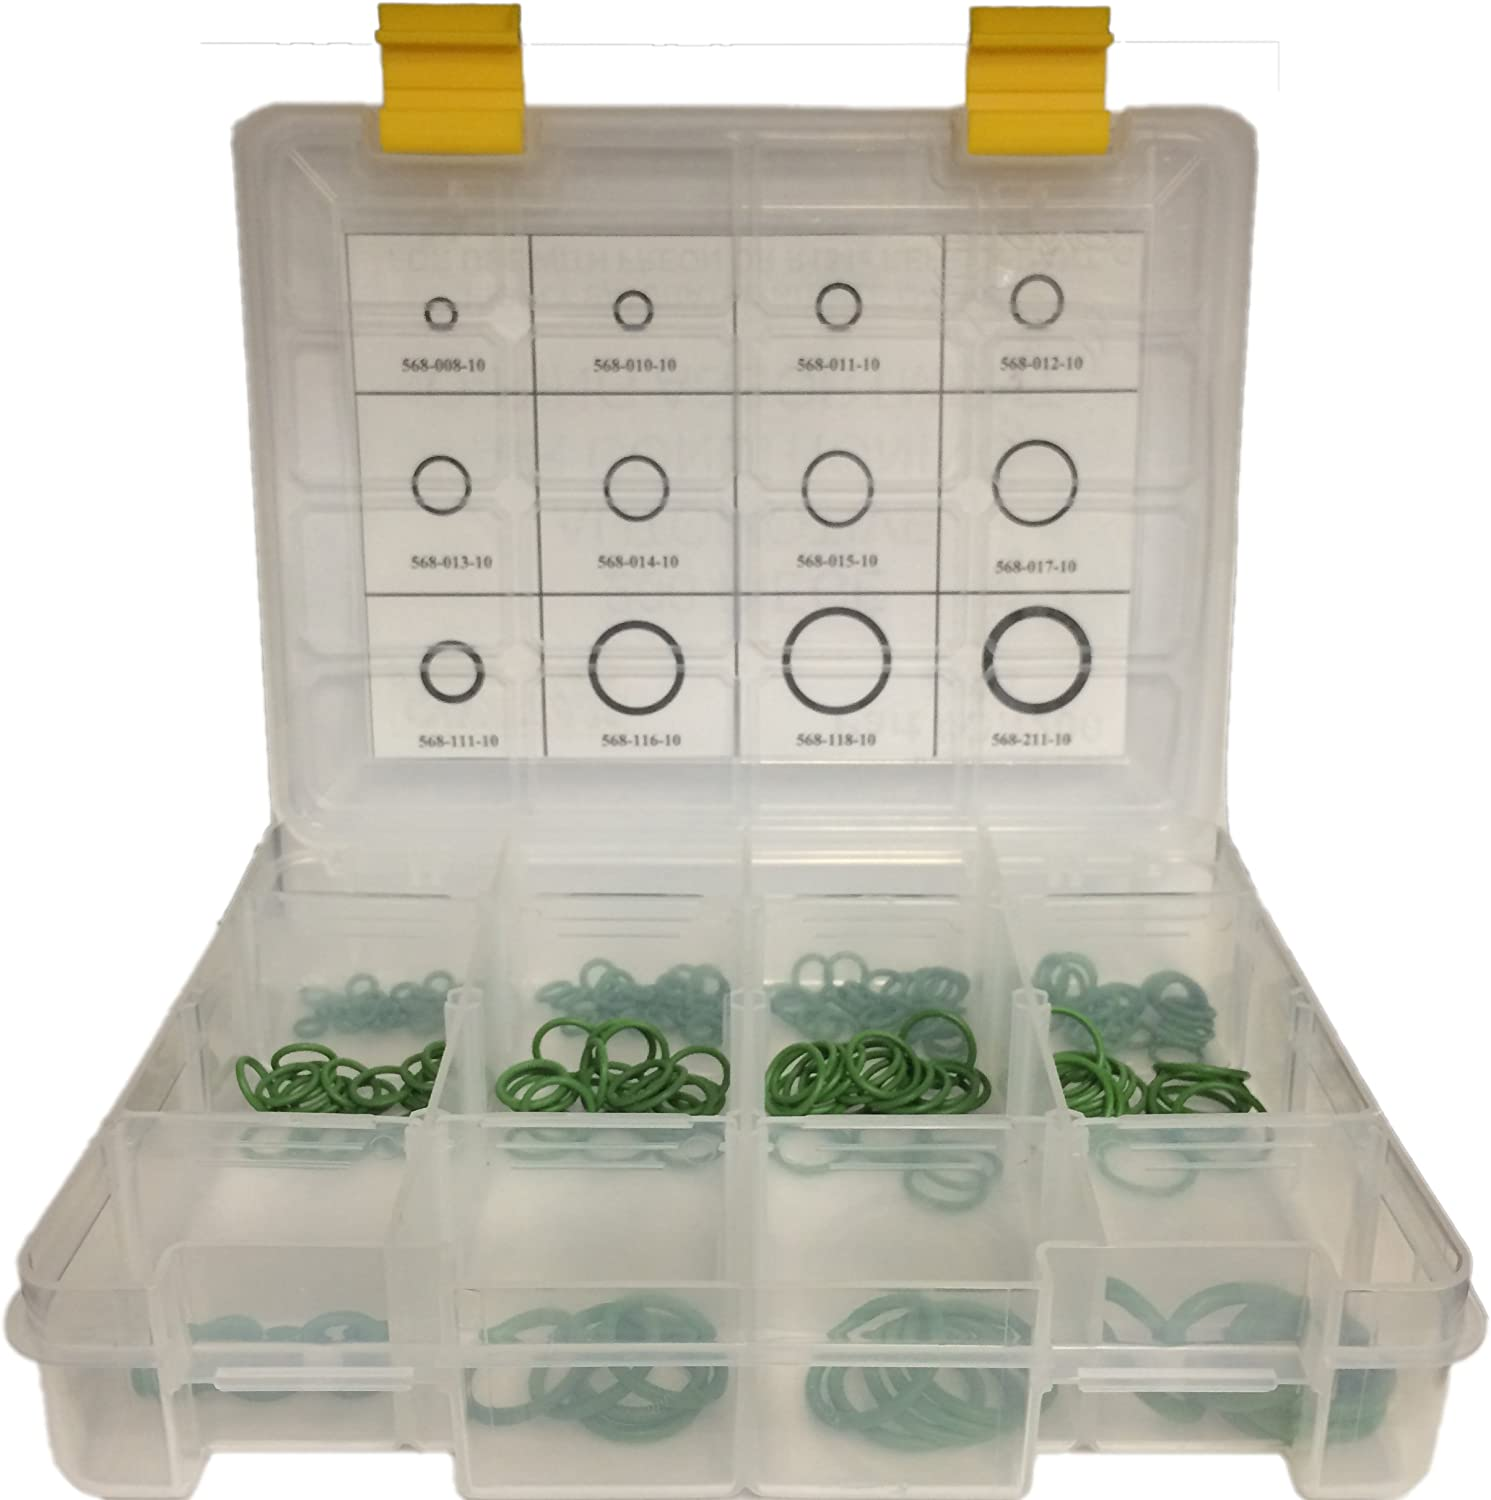 TSI Supercool OR200 Green O-Ring Master Assortment - 200 Piece Kit